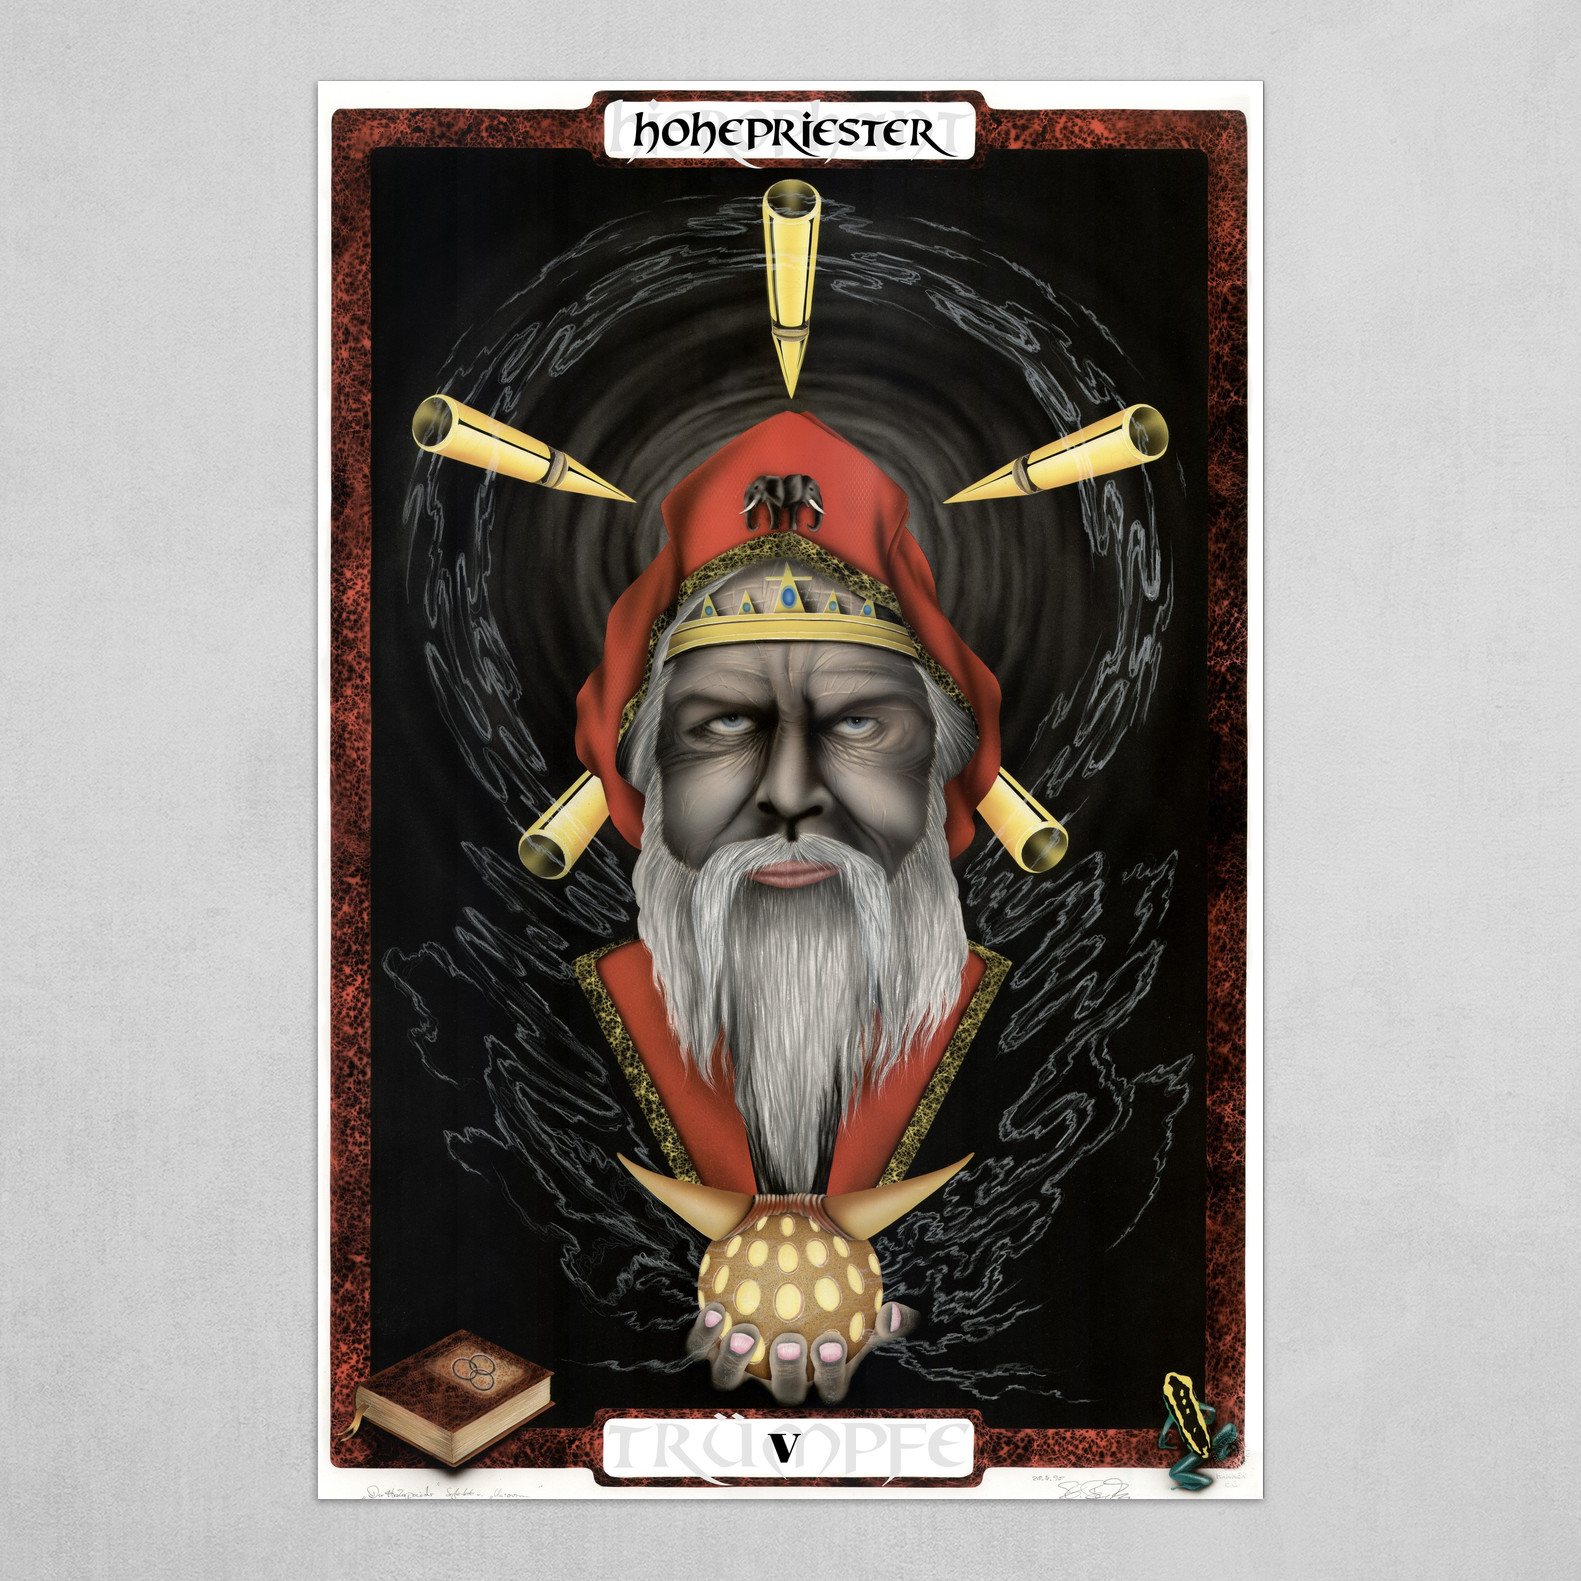 Der Hohepriester - The Hierophant